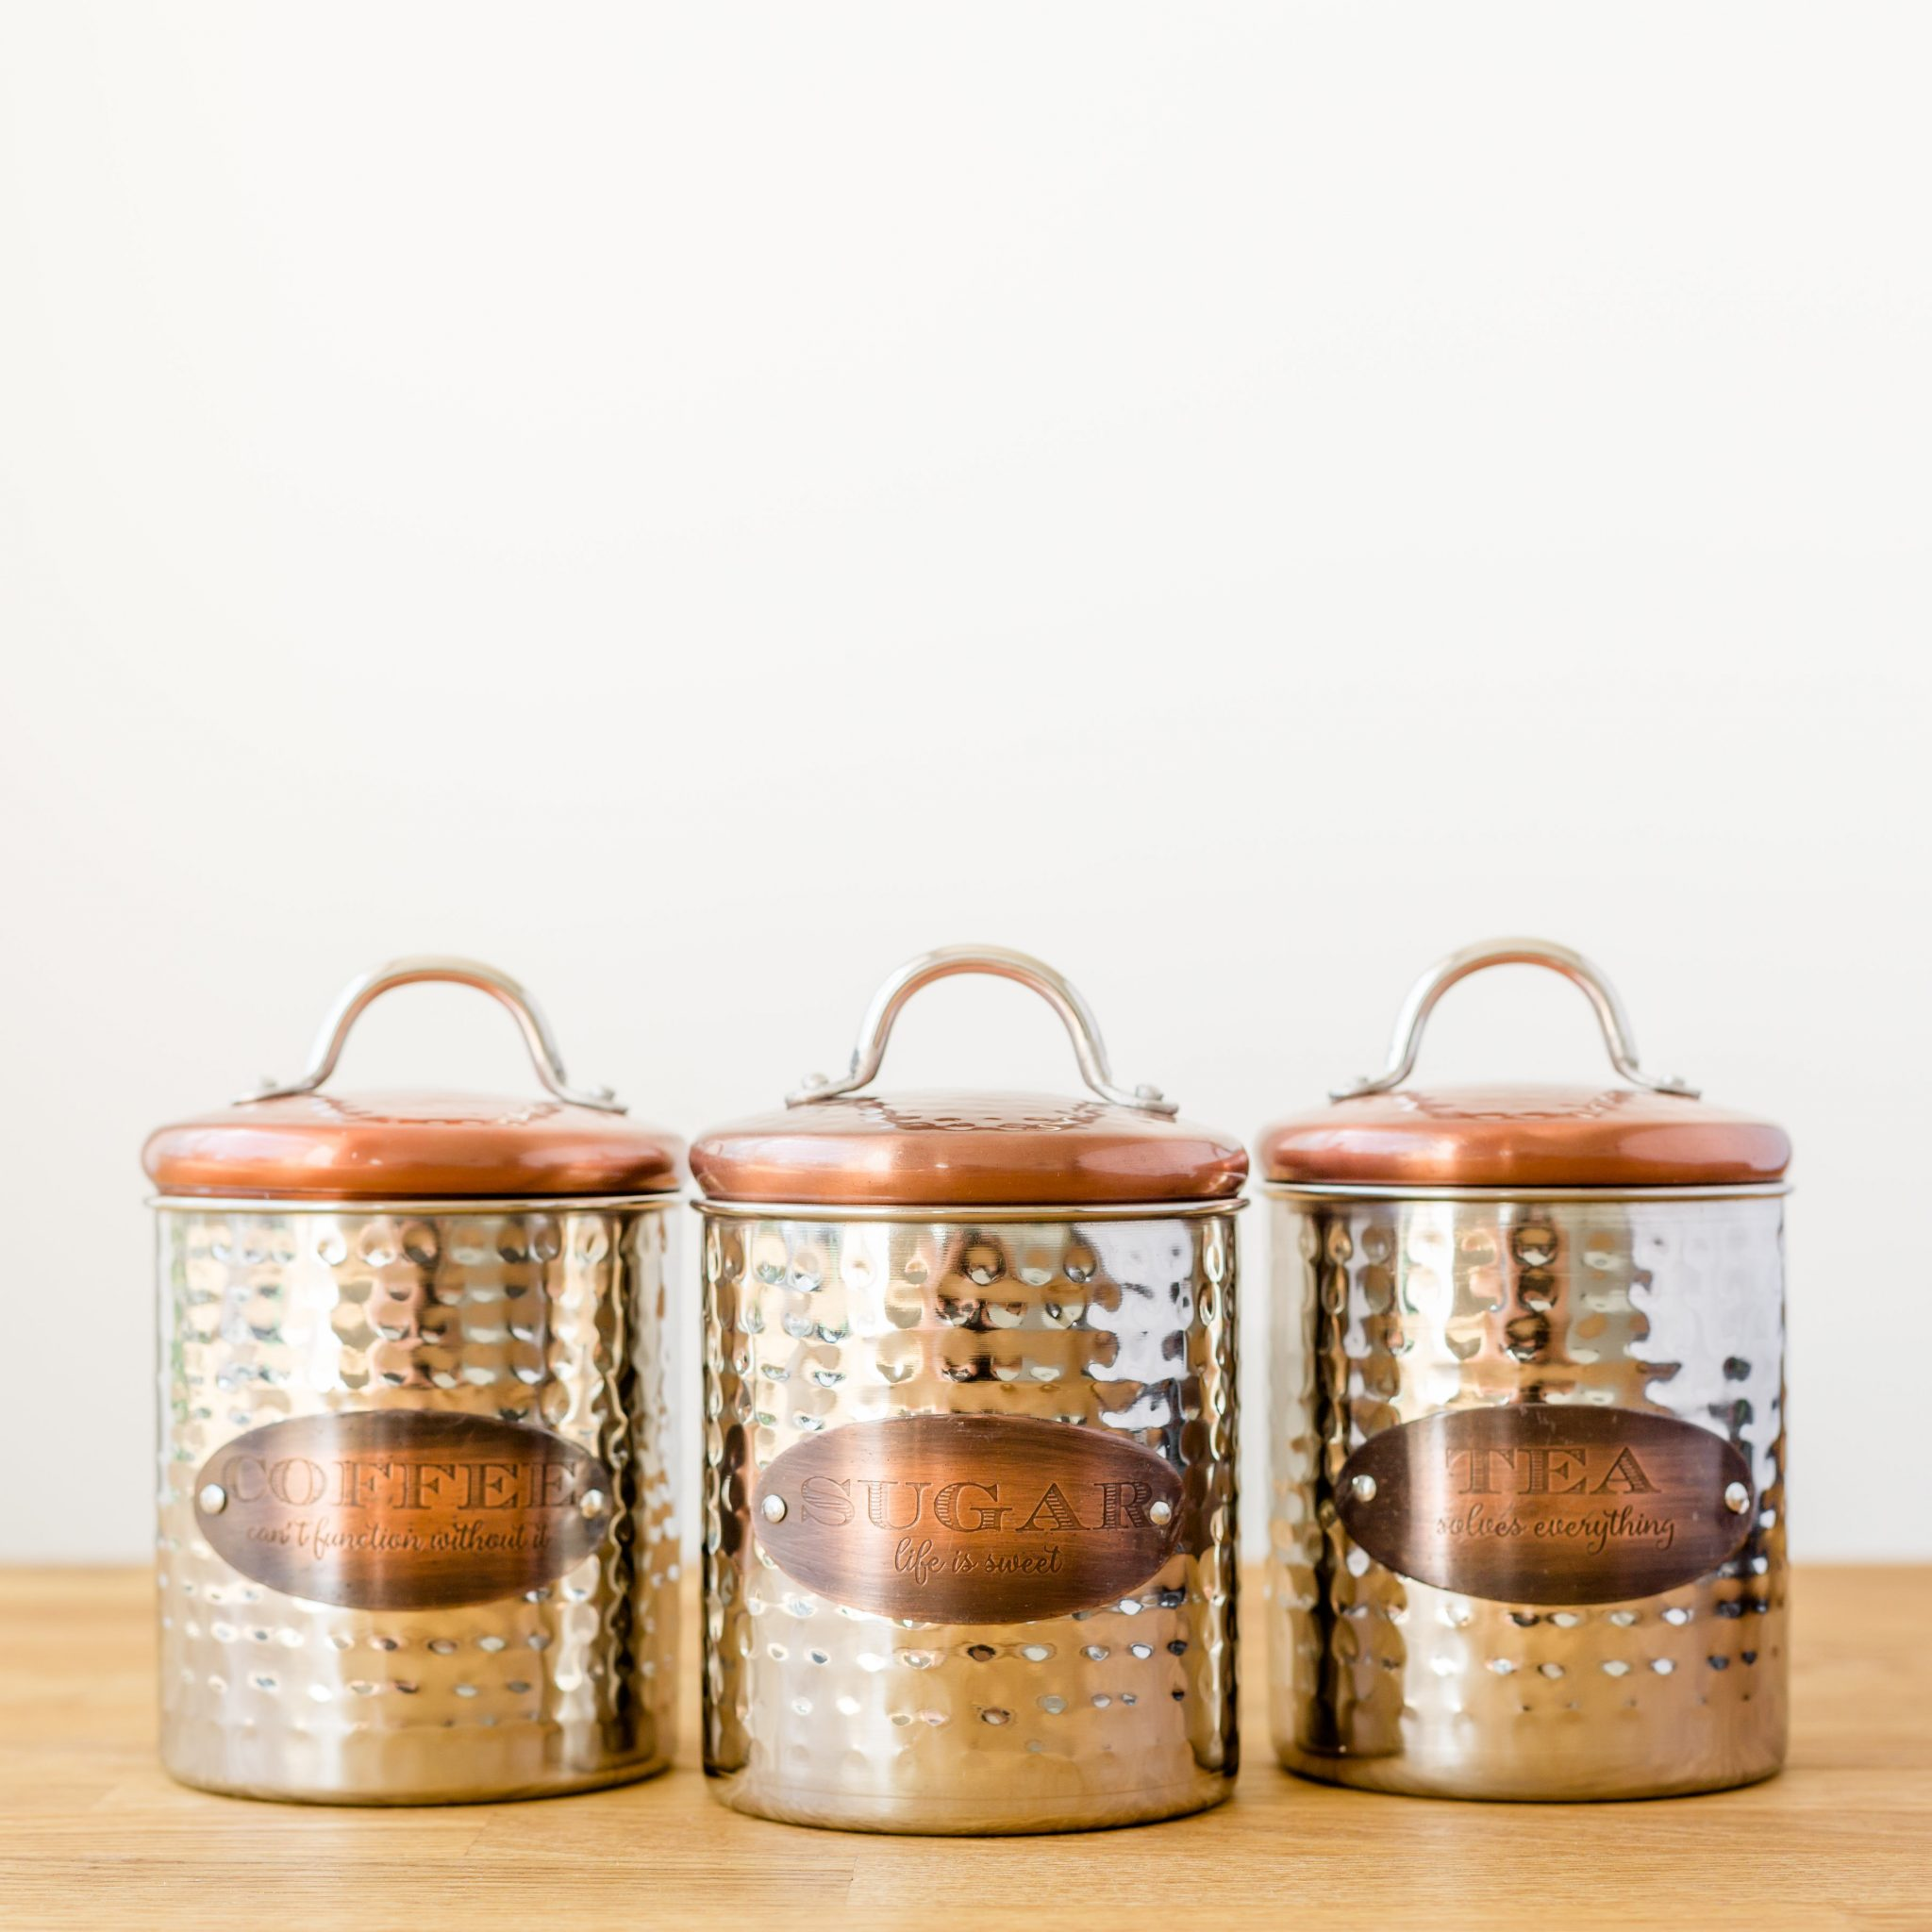 Copper lid tea coffee sugar canisters